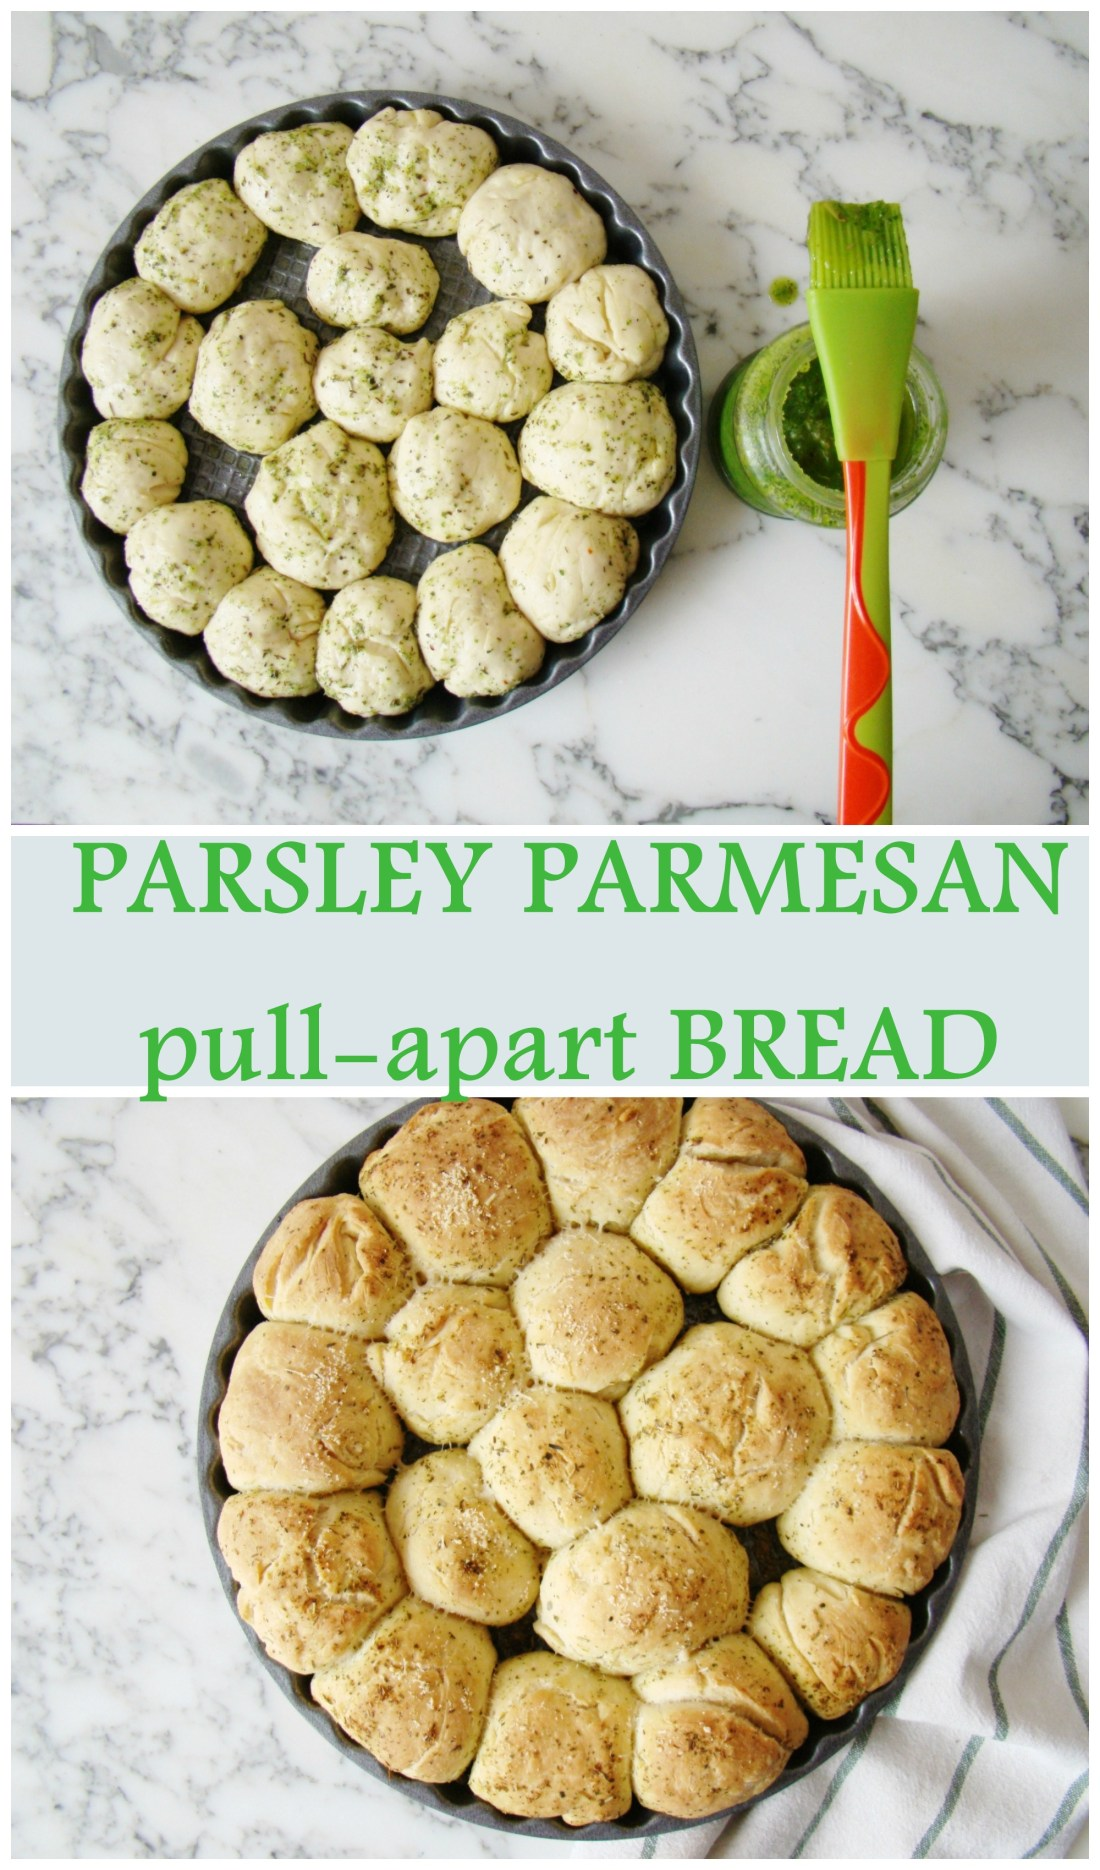 Parsley Parmesan pull-apart Bread